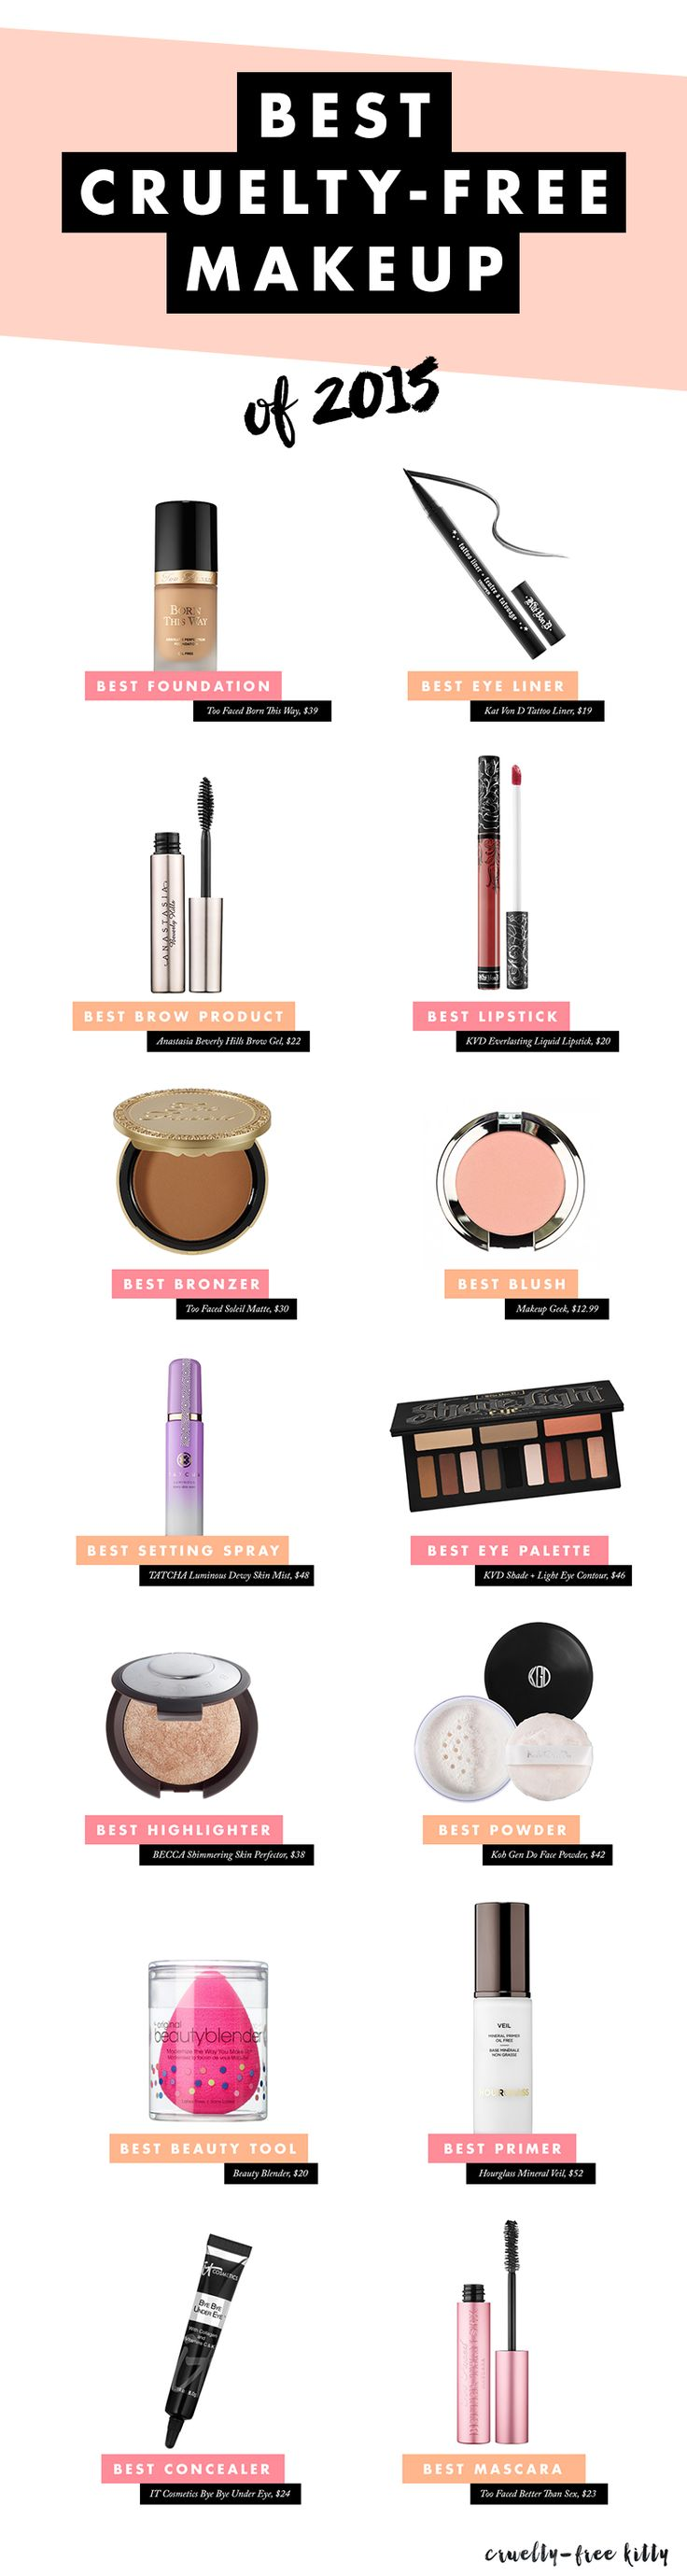 Ditch the animal cruelty! These brands are 100% cruelty-free.